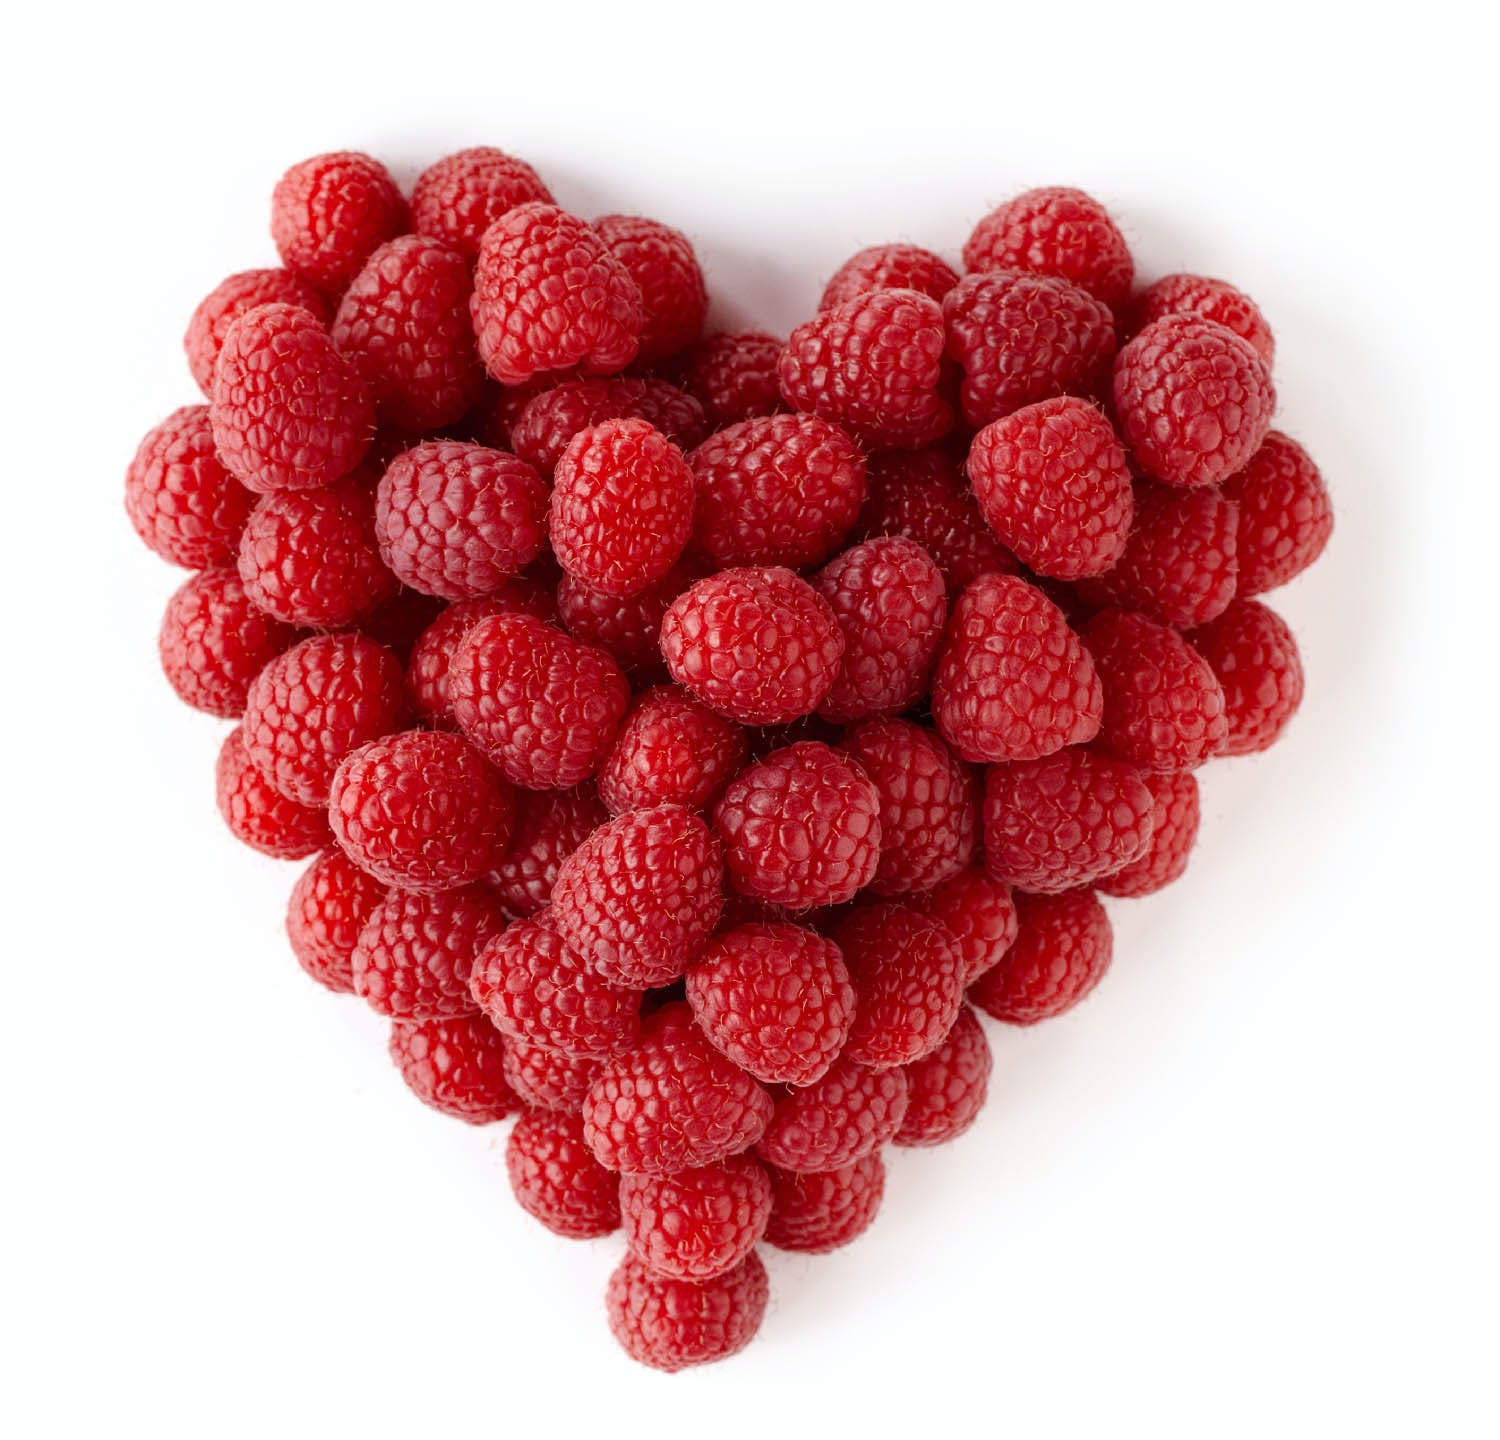 Wishes for a Berry Healthy Heart